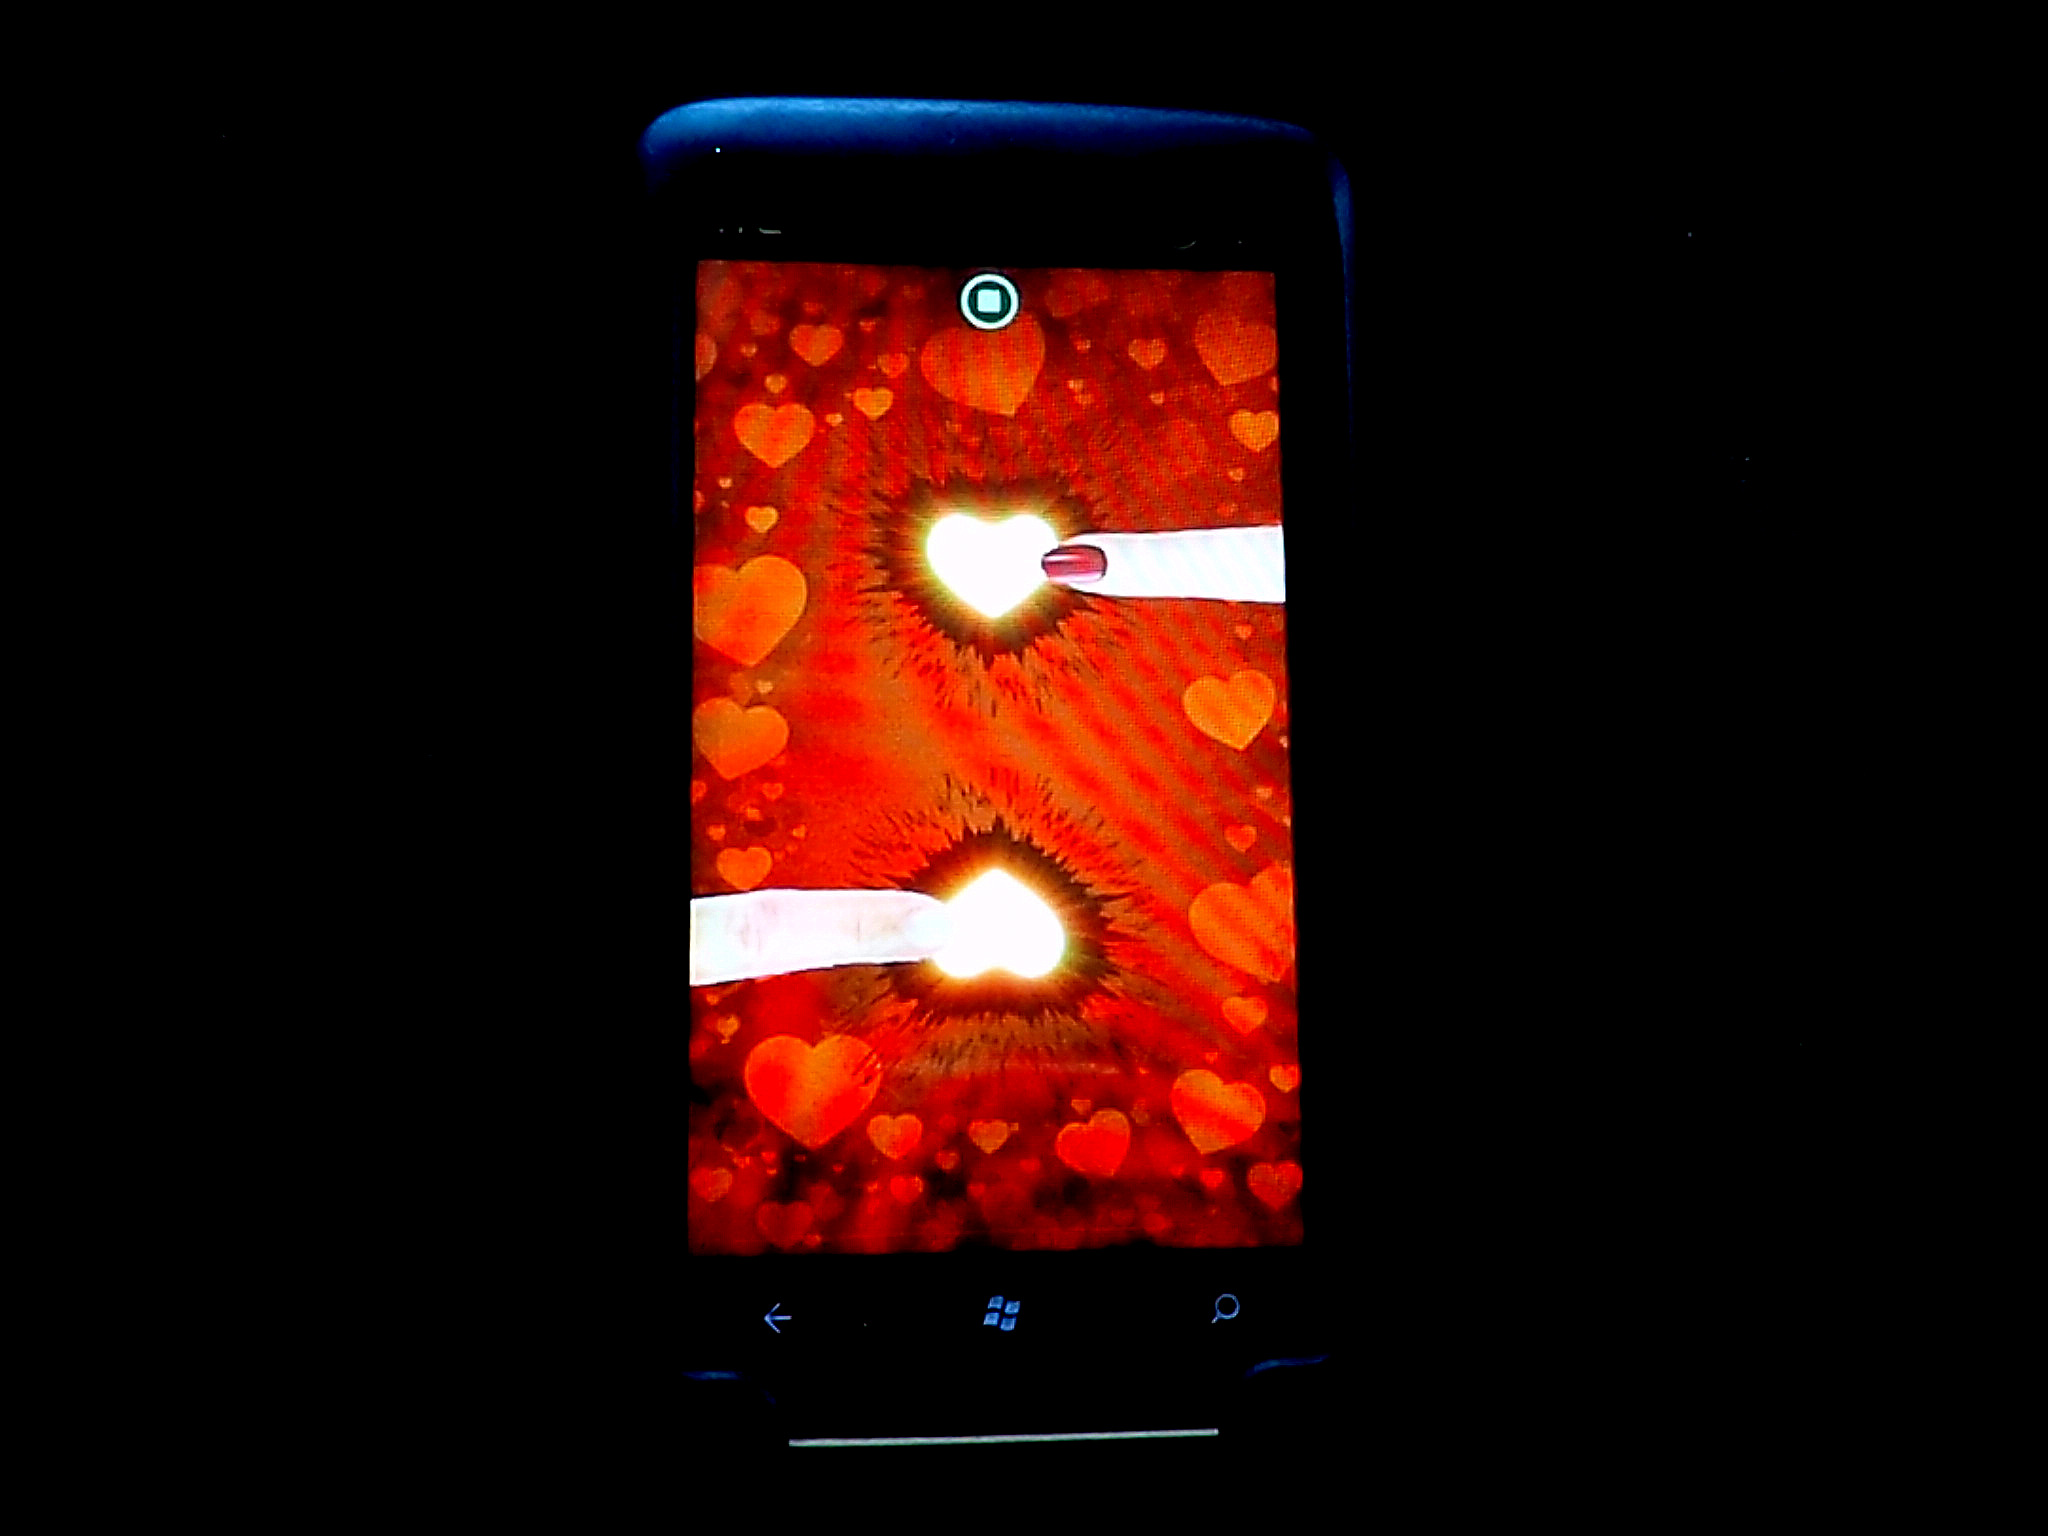 There's a 'Love Detector' application for my smart phone. It ...